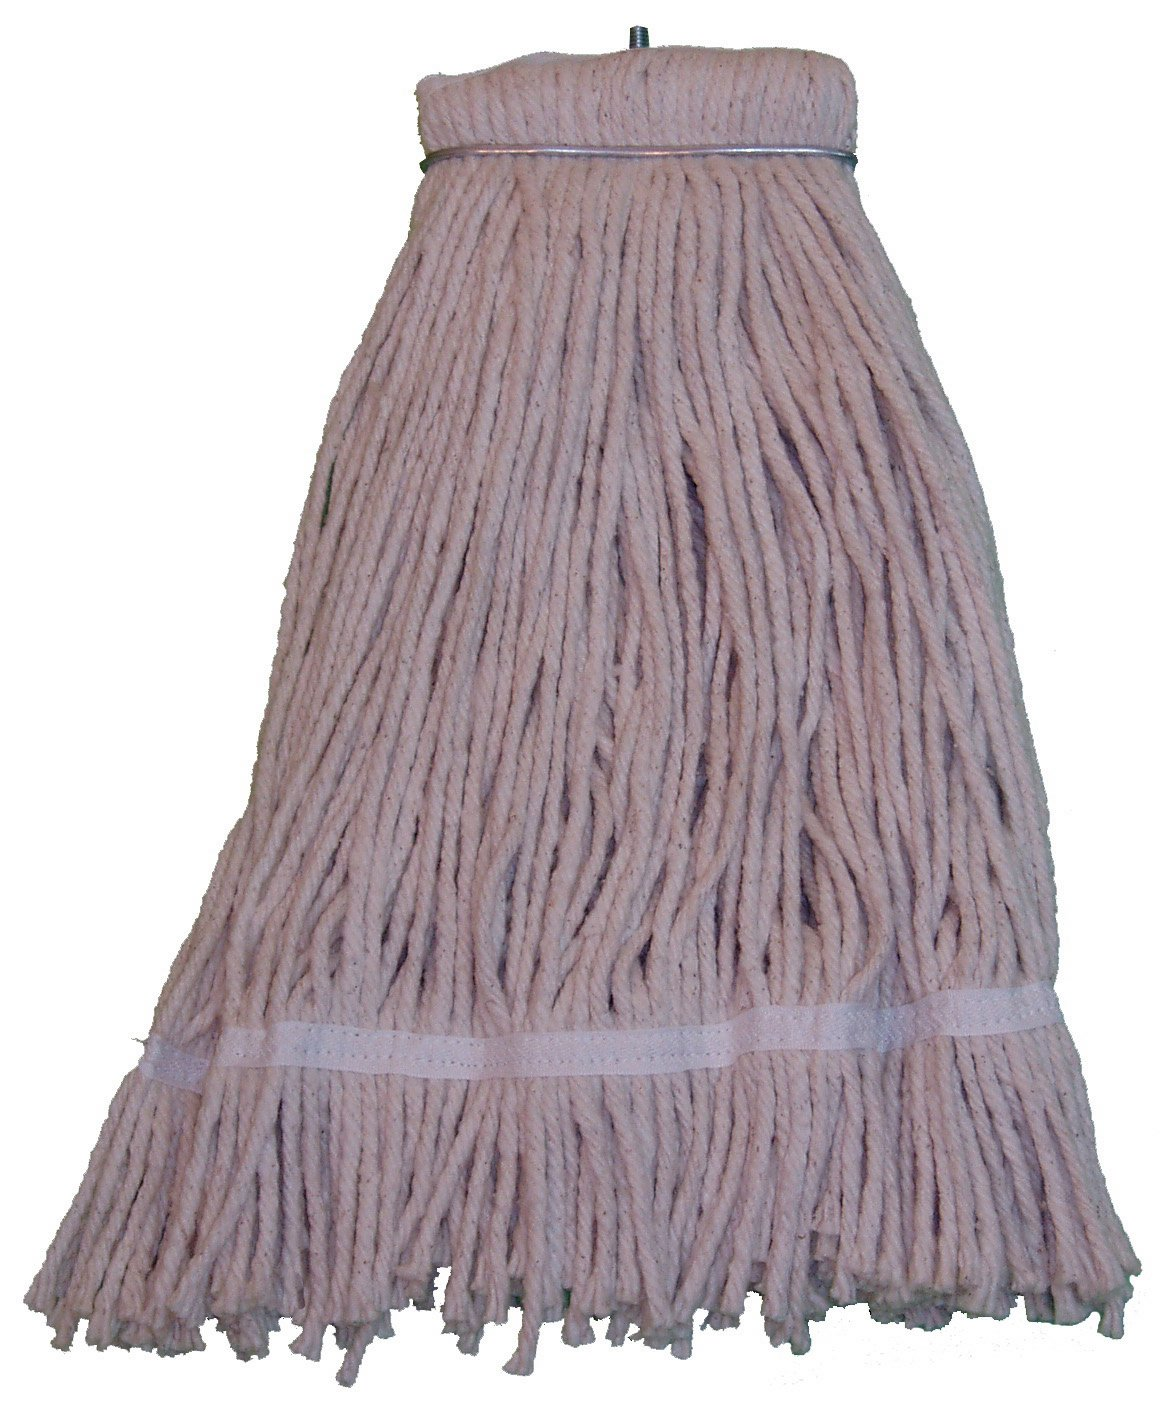 Pack of 12 Zephyr 20025 Shineup 4-Ply Cotton 24oz Screwflat Cut End Mop Head with Fantail